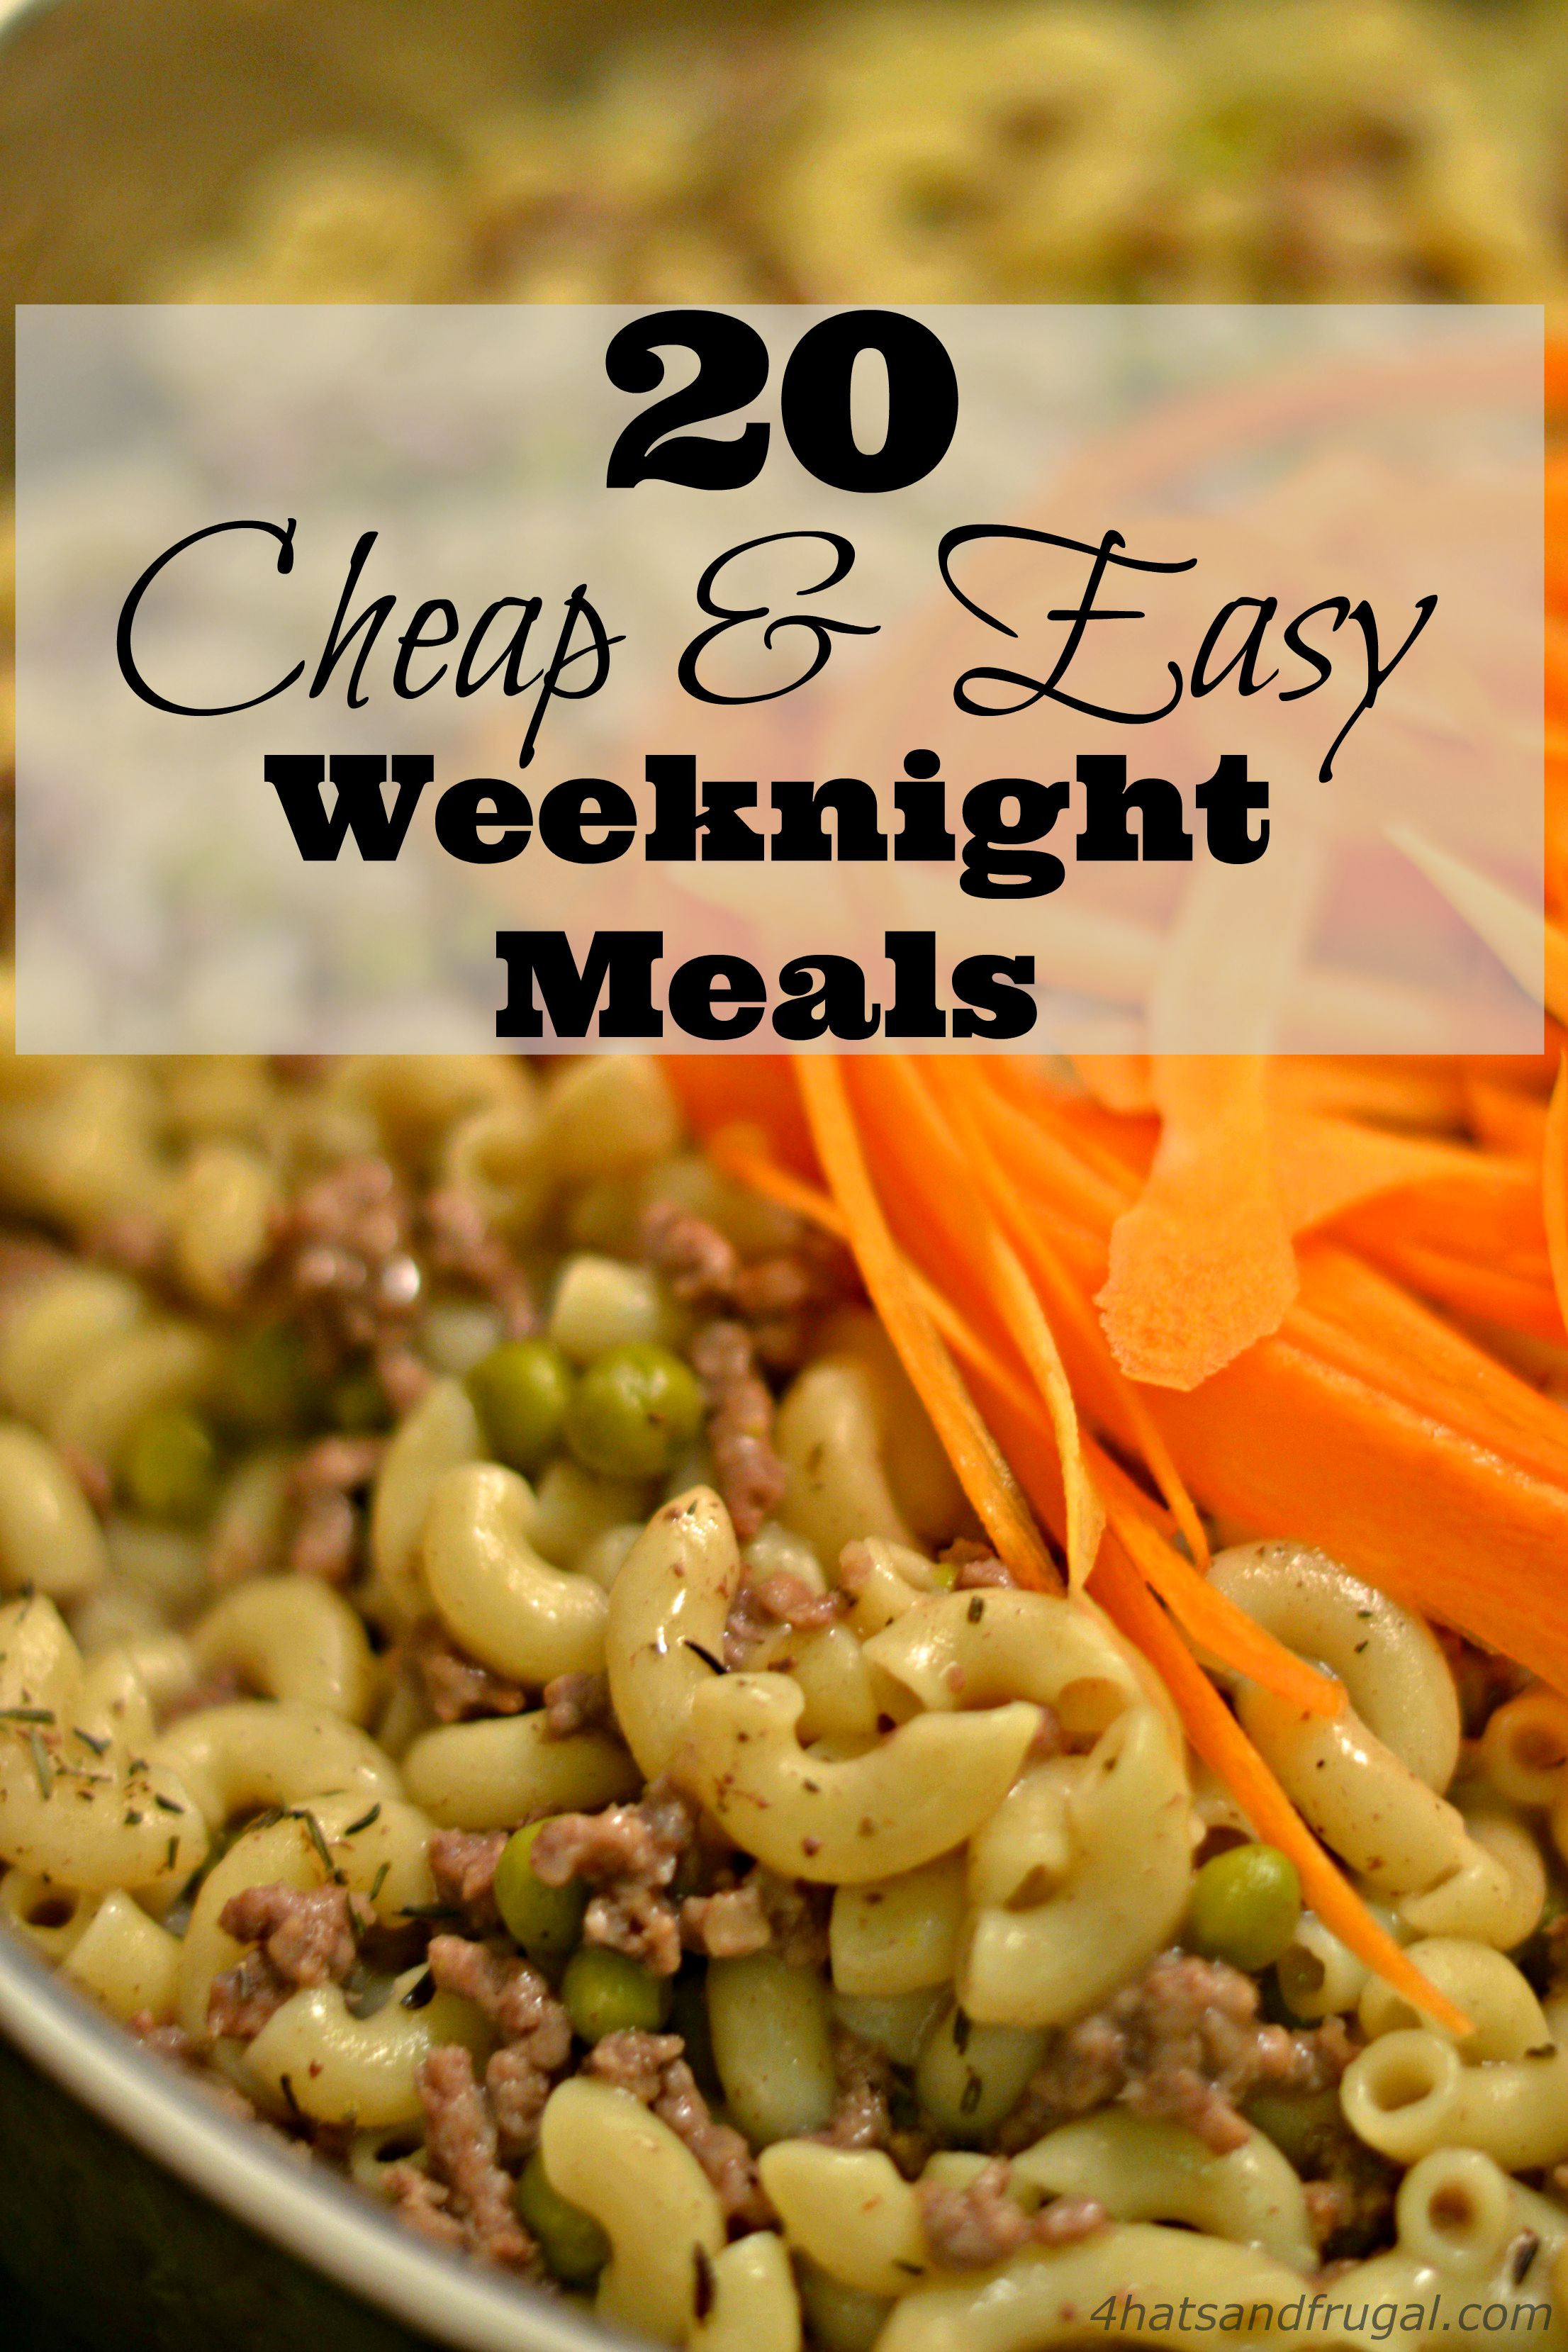 Easy Cheap Dinner  20 Cheap & Easy Weeknight Meals 4 Hats and Frugal